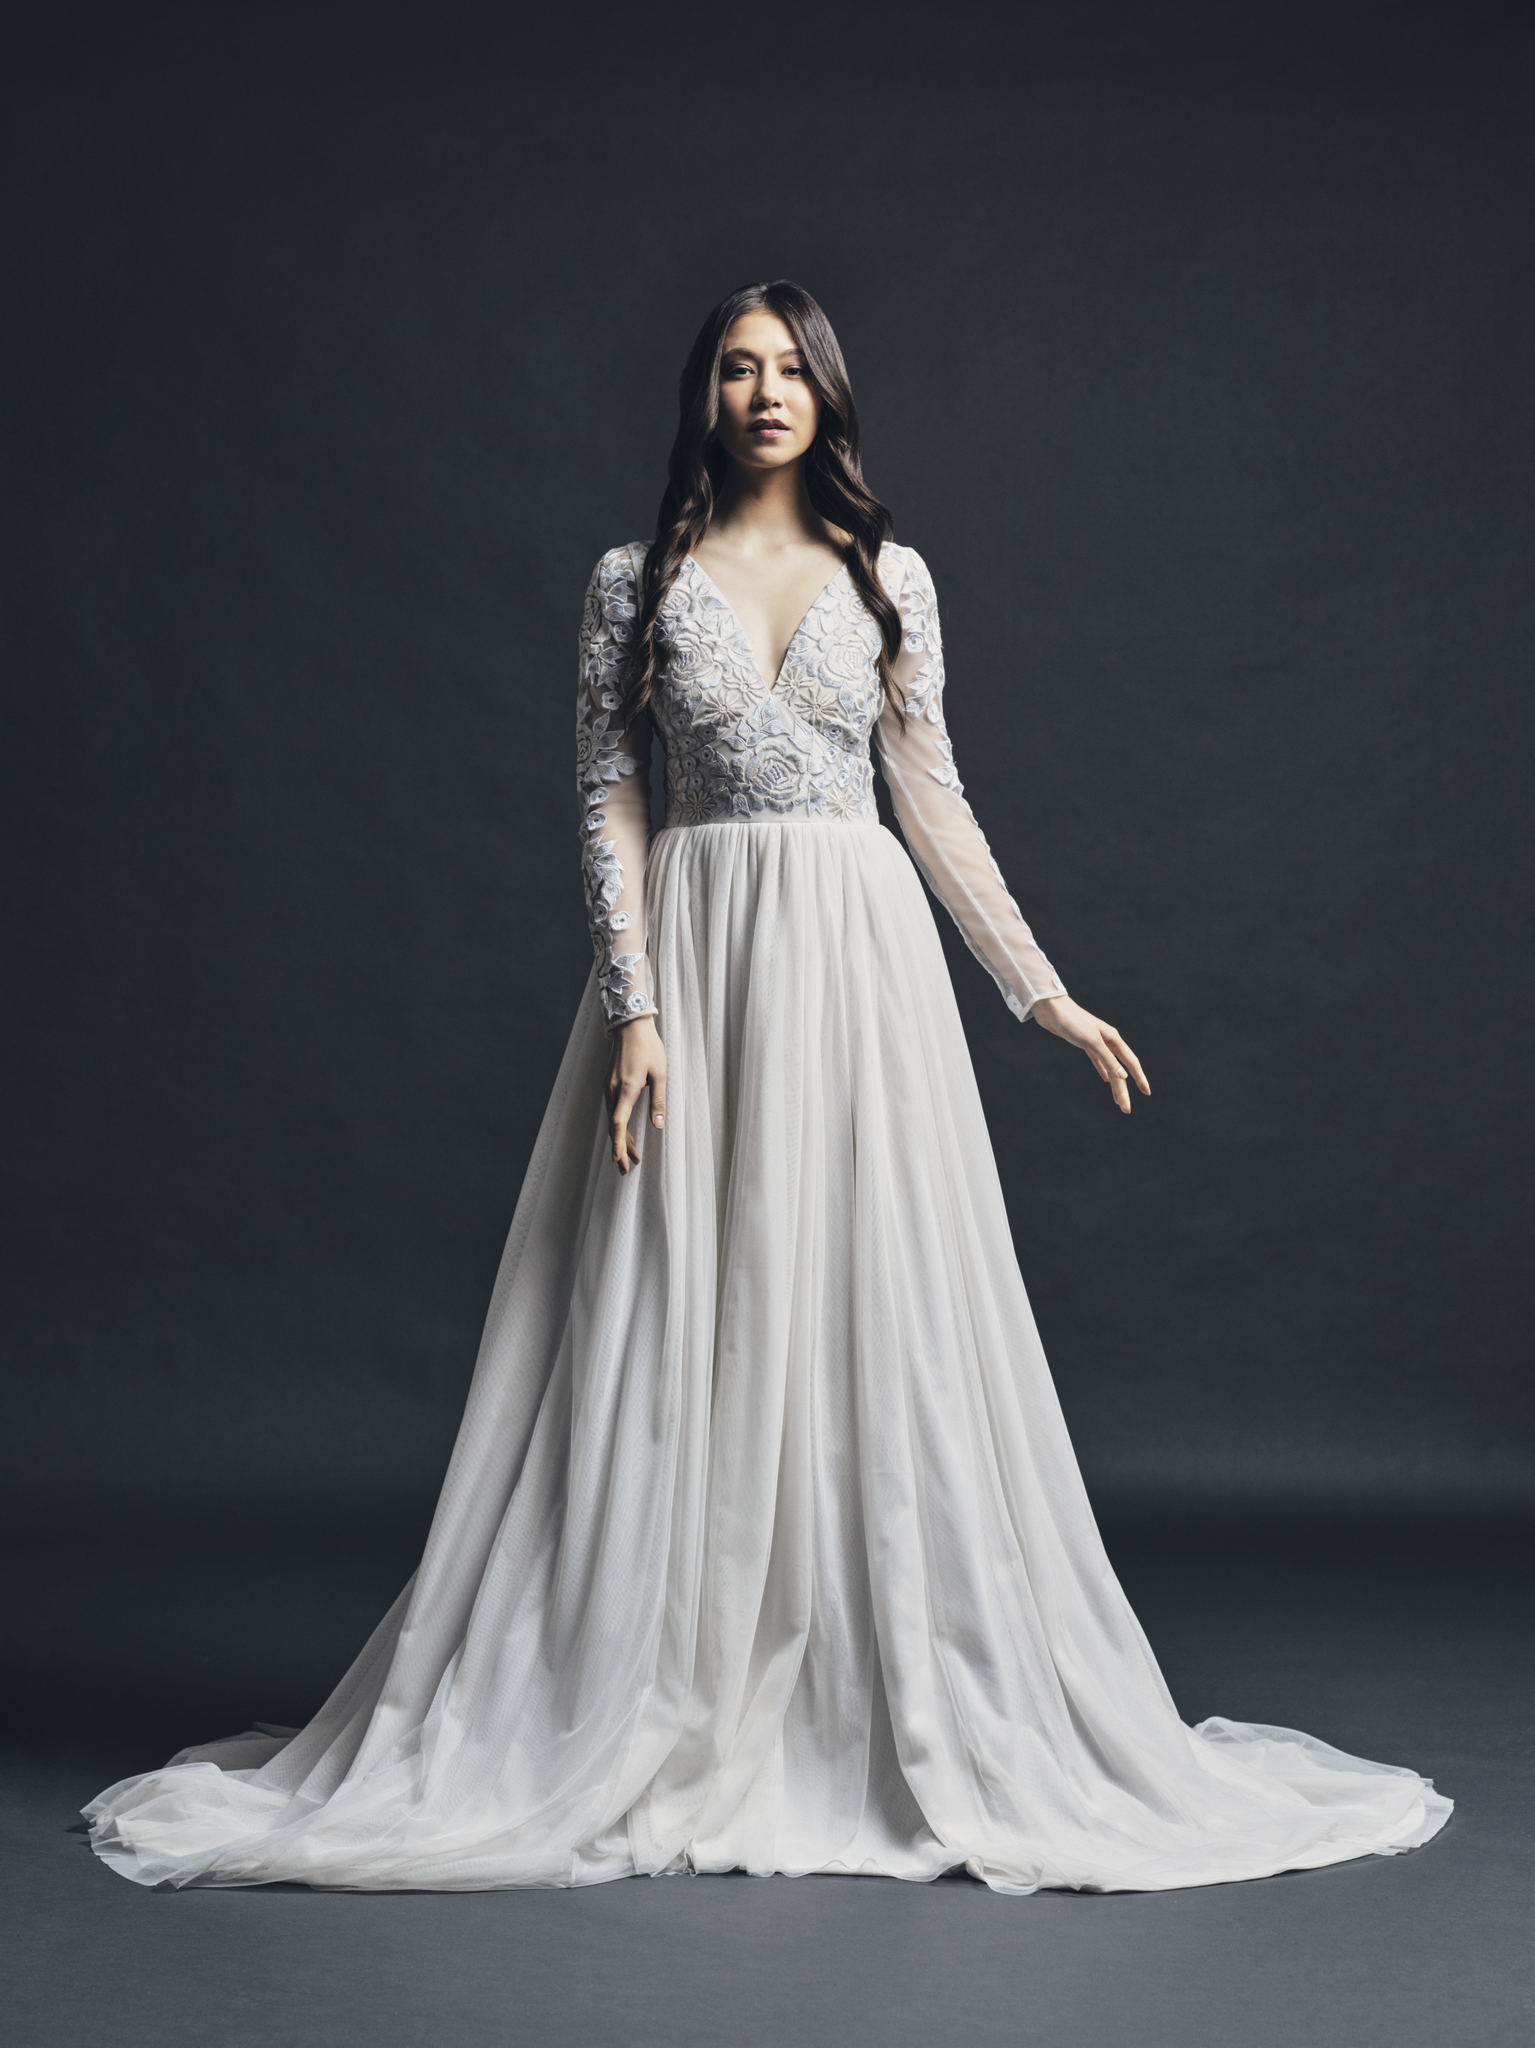 Chic Nostalgia Wedding Dress 4